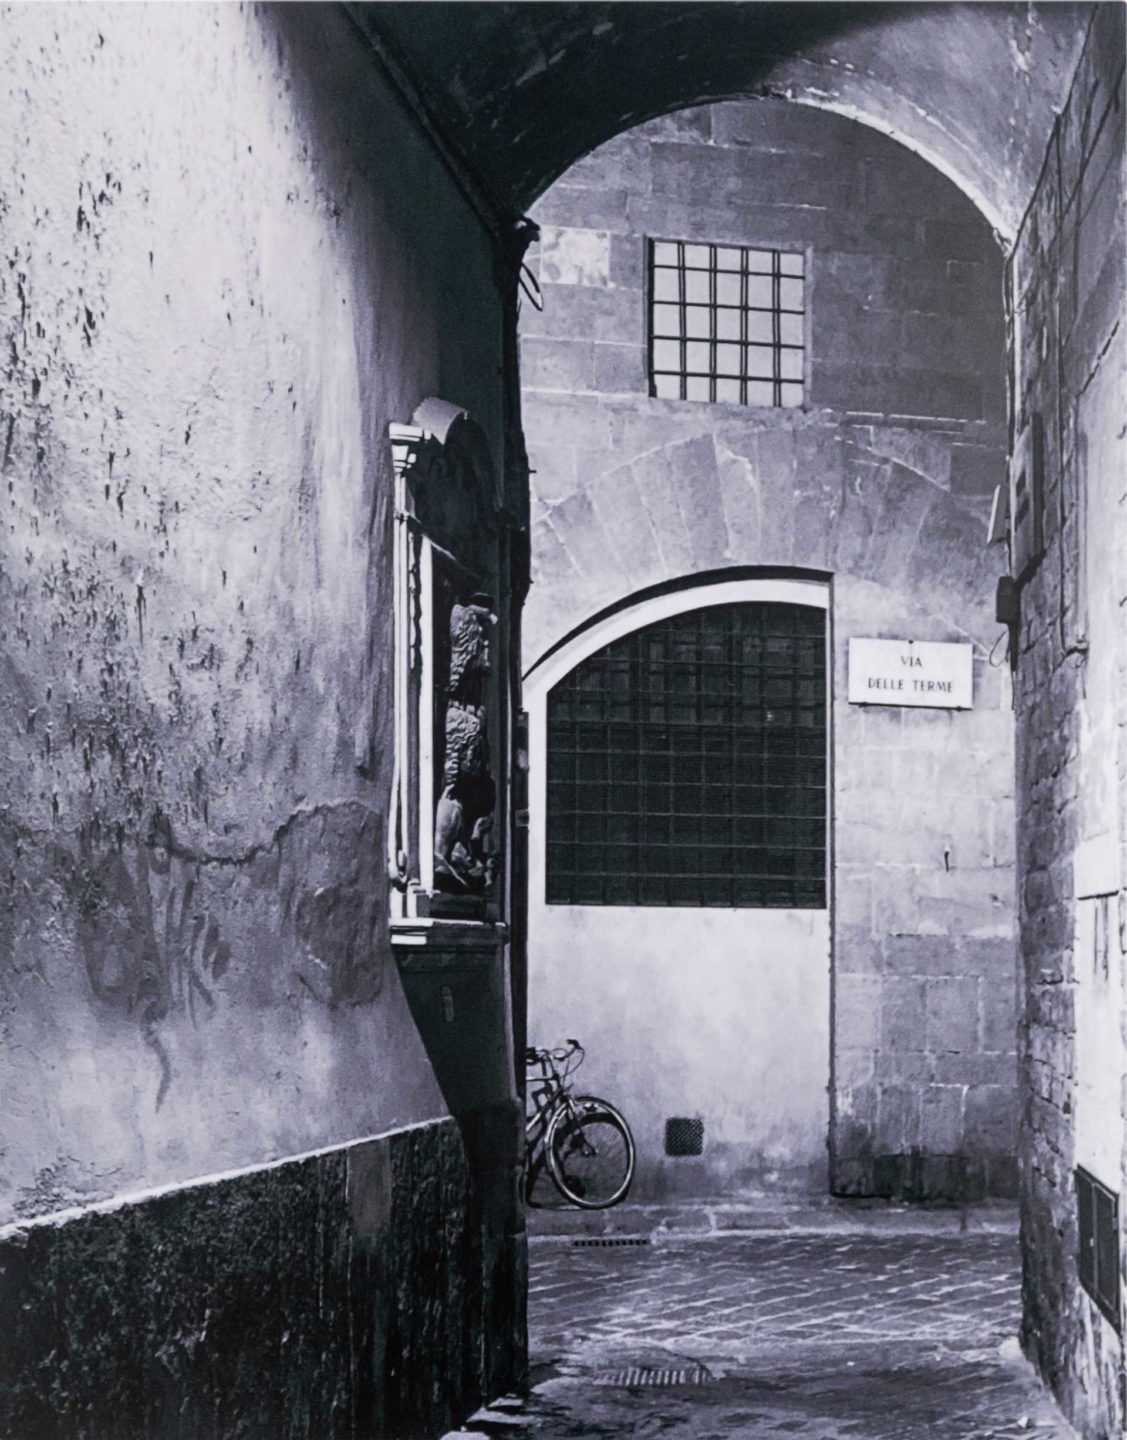 Black and white photo of an alley in Italy